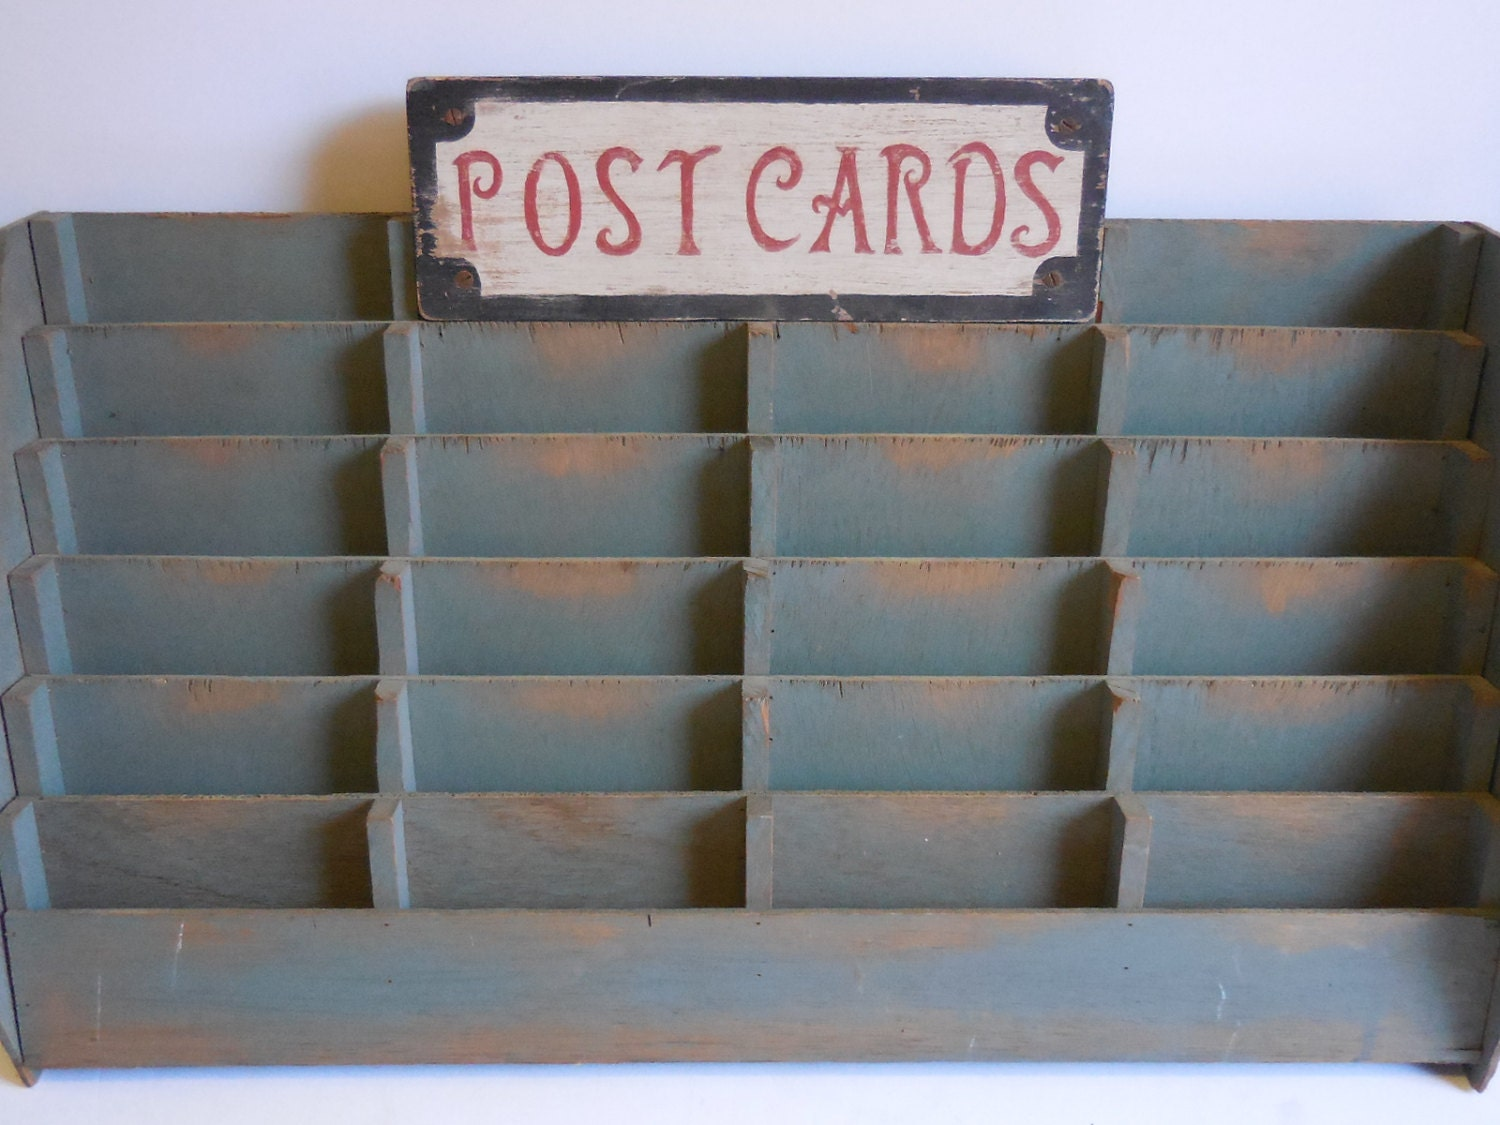 Vintage Postcard Display Rack Card Shelves Slots Wood